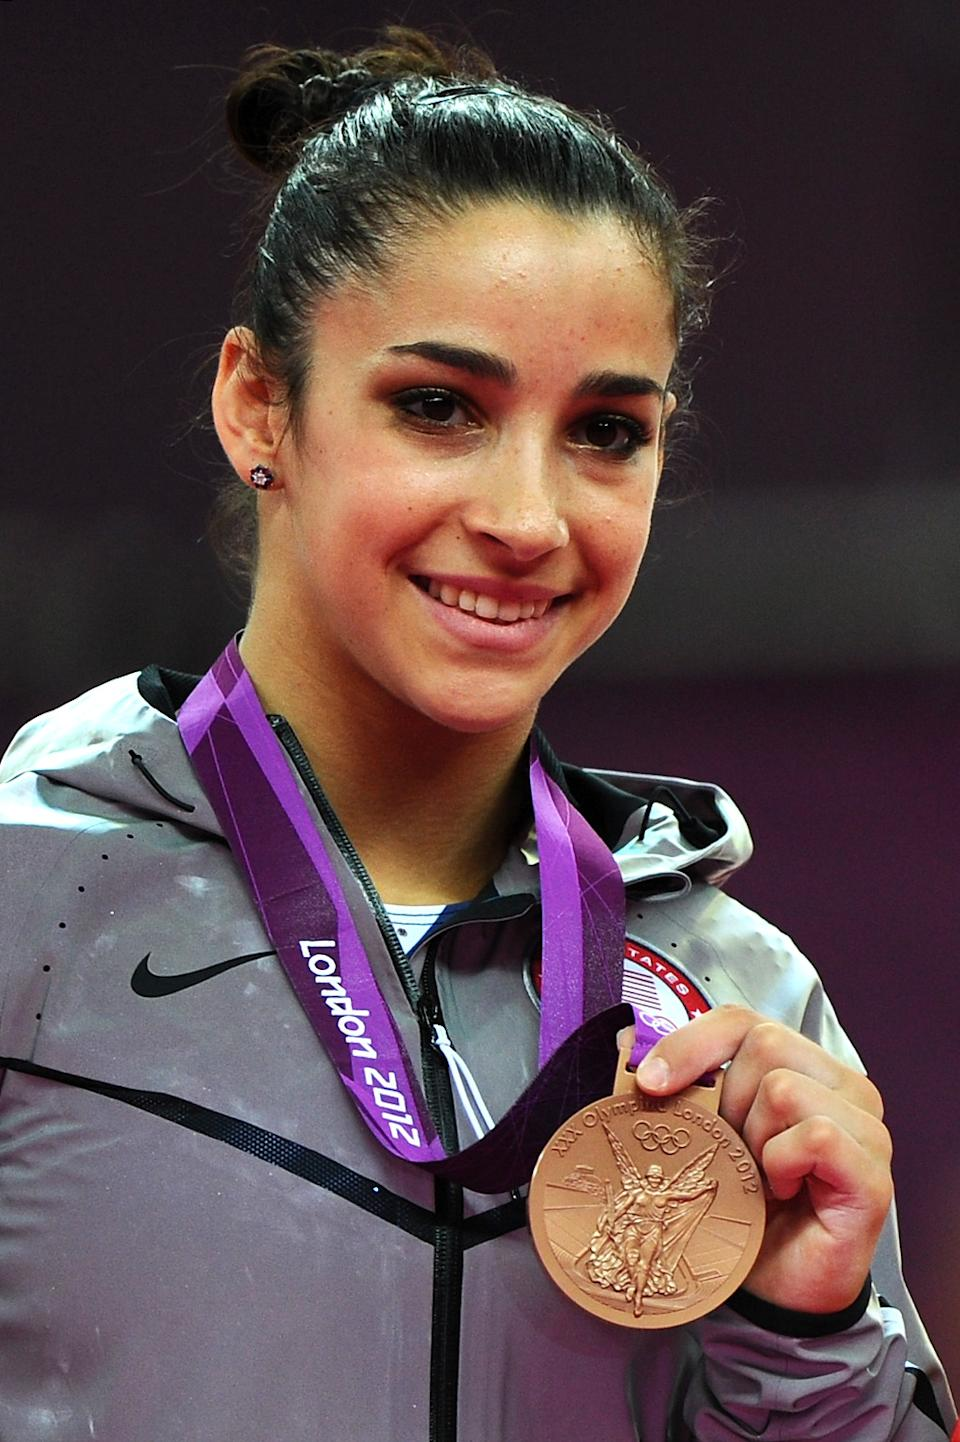 """Bronze medalist <a href=""""http://sports.yahoo.com/olympics/gymnastics/alexandra-raisman-1134192/"""" data-ylk=""""slk:Alexandra Raisman"""" class=""""link rapid-noclick-resp"""">Alexandra Raisman</a> of the United States poses on the podium during the medal ceremony for the on Day 11 of the London 2012 Olympic Games at North Greenwich Arena on August 7, 2012 in London, England. (Photo by Michael Regan/Getty Images)"""